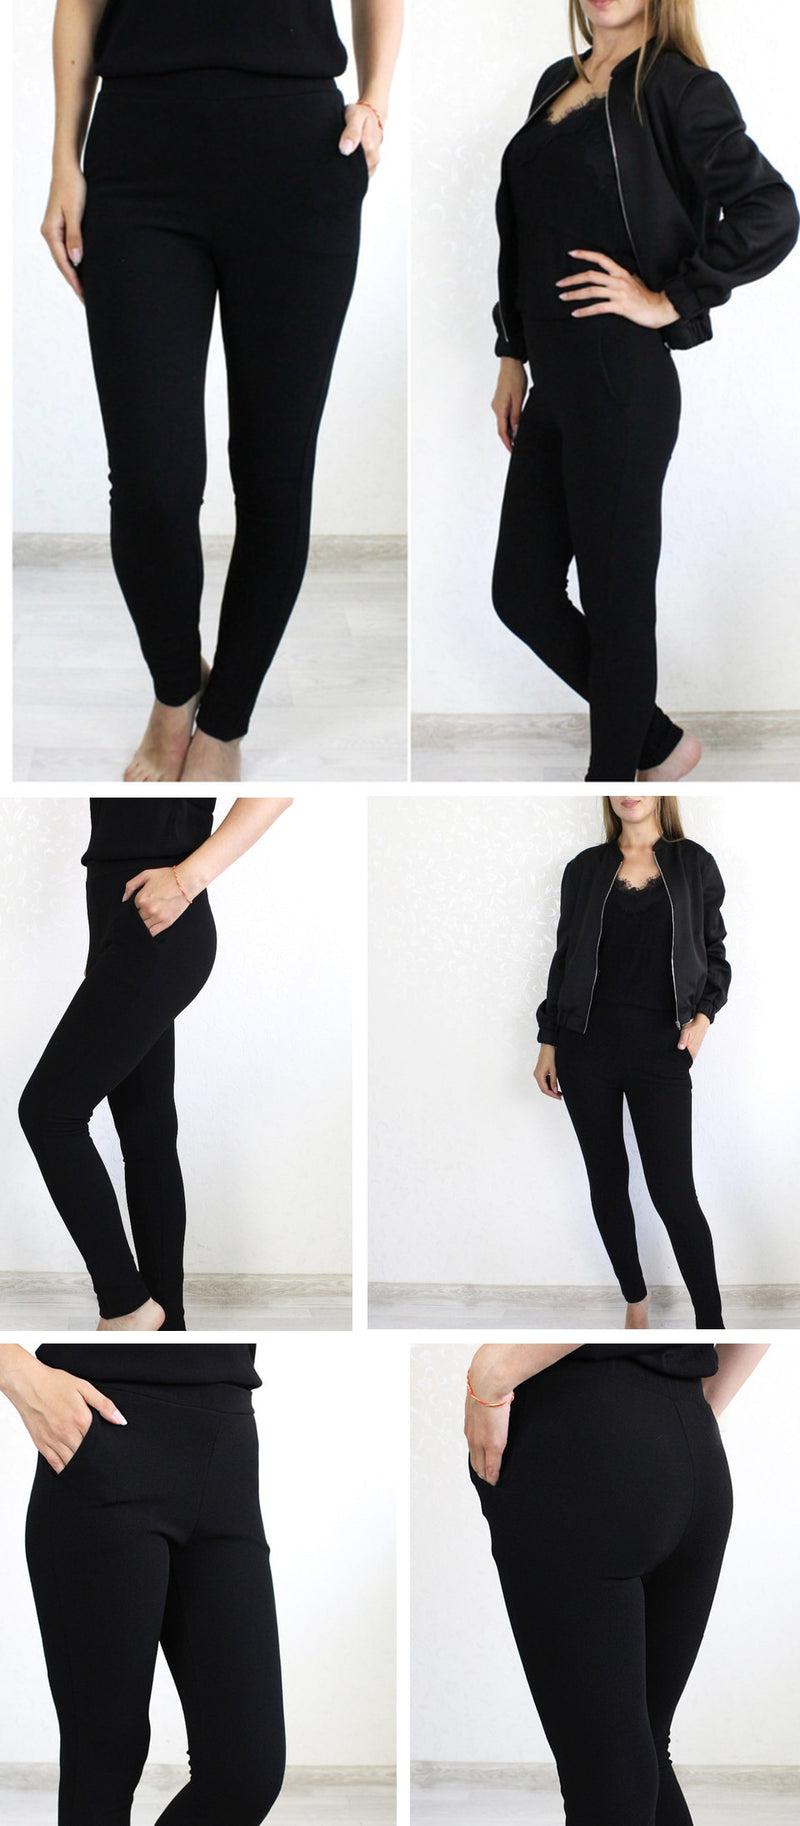 Elastic Waist Black Striped Mid Waist Skinny Trousers Office Pants